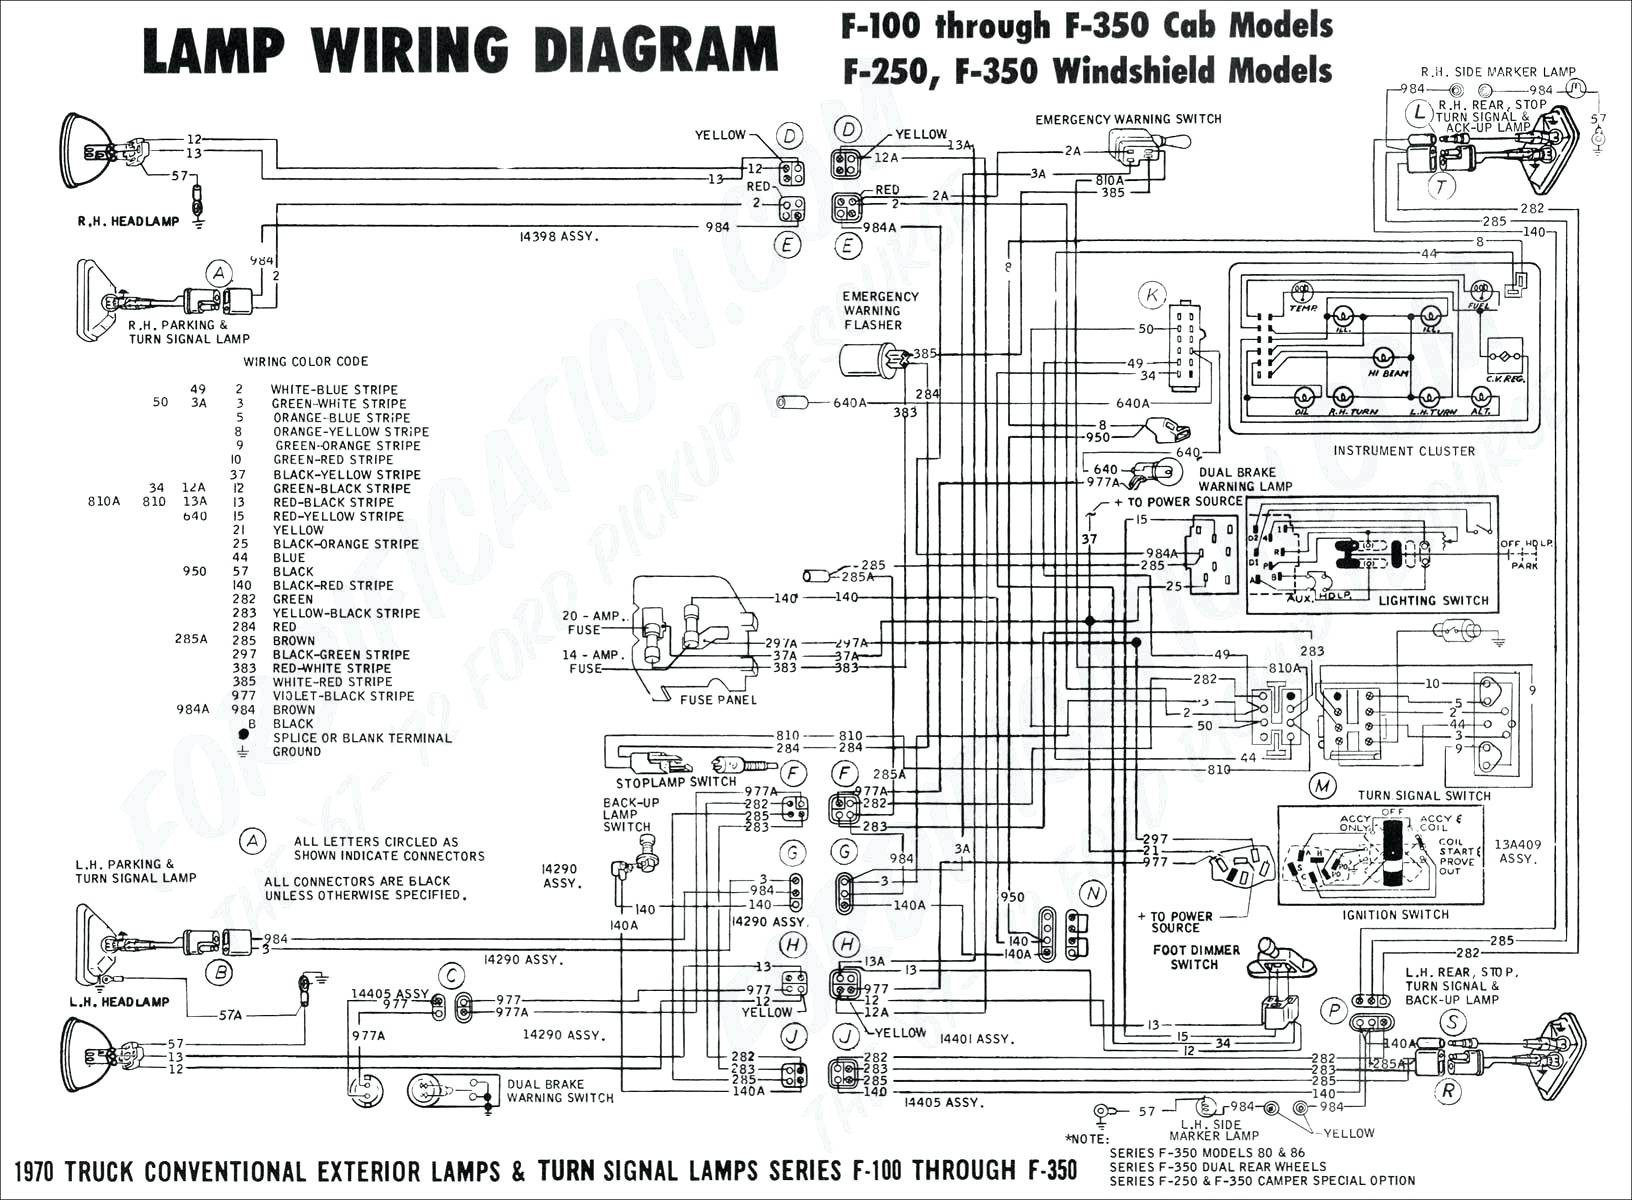 2000 ford f350 tail light wiring diagram awesome 2005 ford f 350 wiring diagram enthusiast wiring diagrams e280a2 of 2000 ford f350 tail light wiring diagram